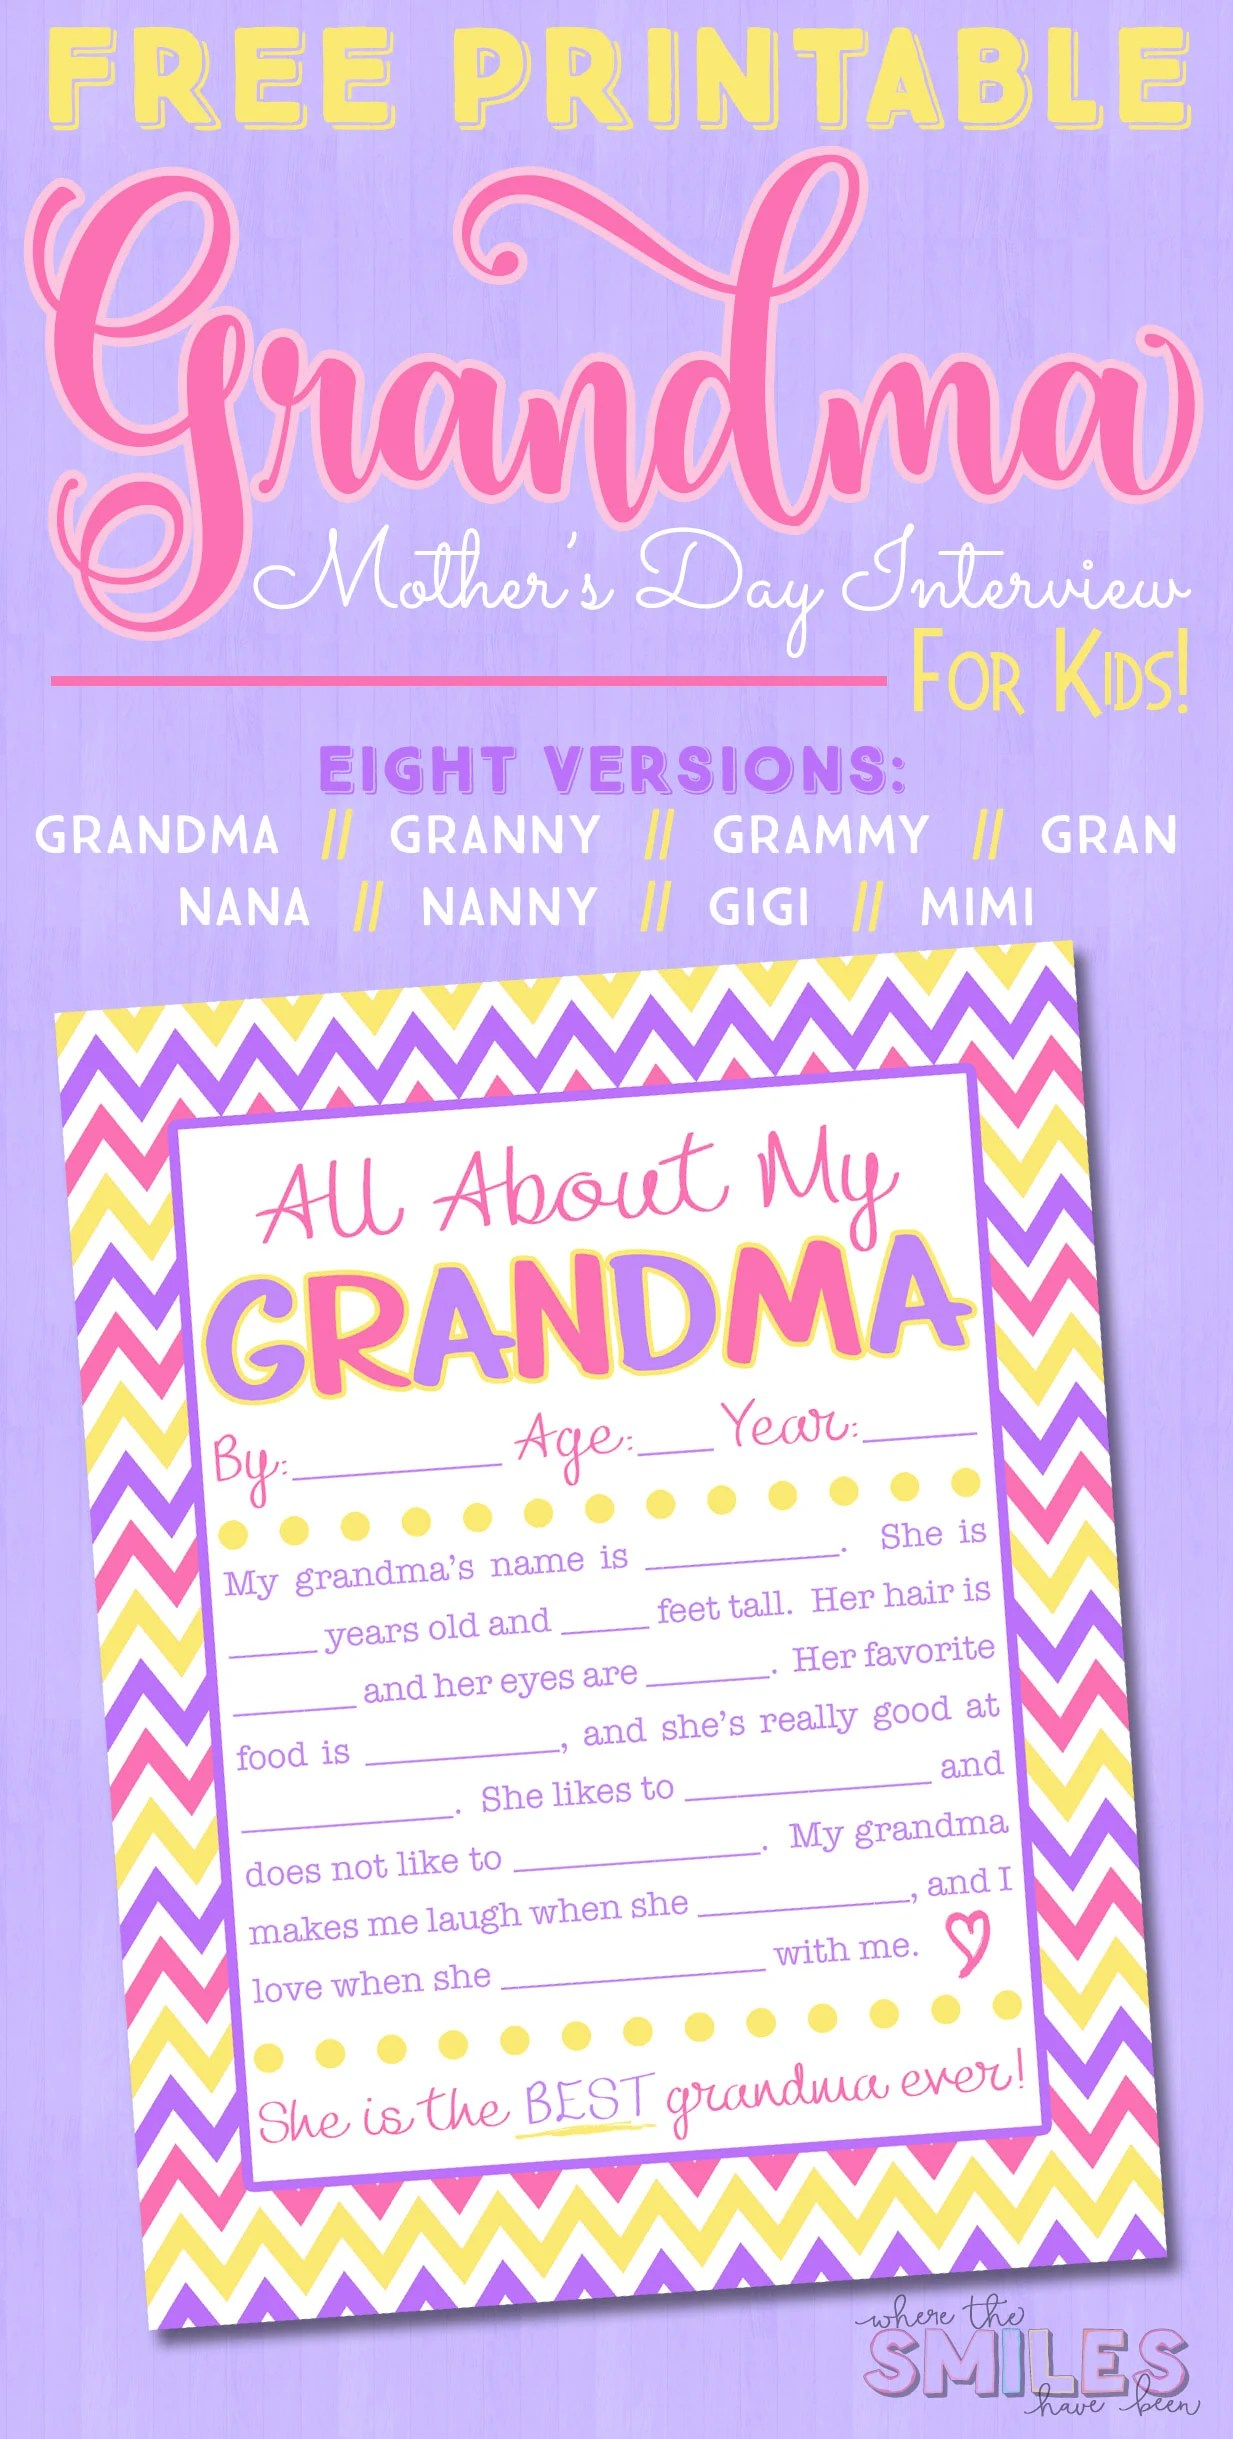 All About My Grandma Interview With FREE Printable {EIGHT Versions} | Where  The Smiles